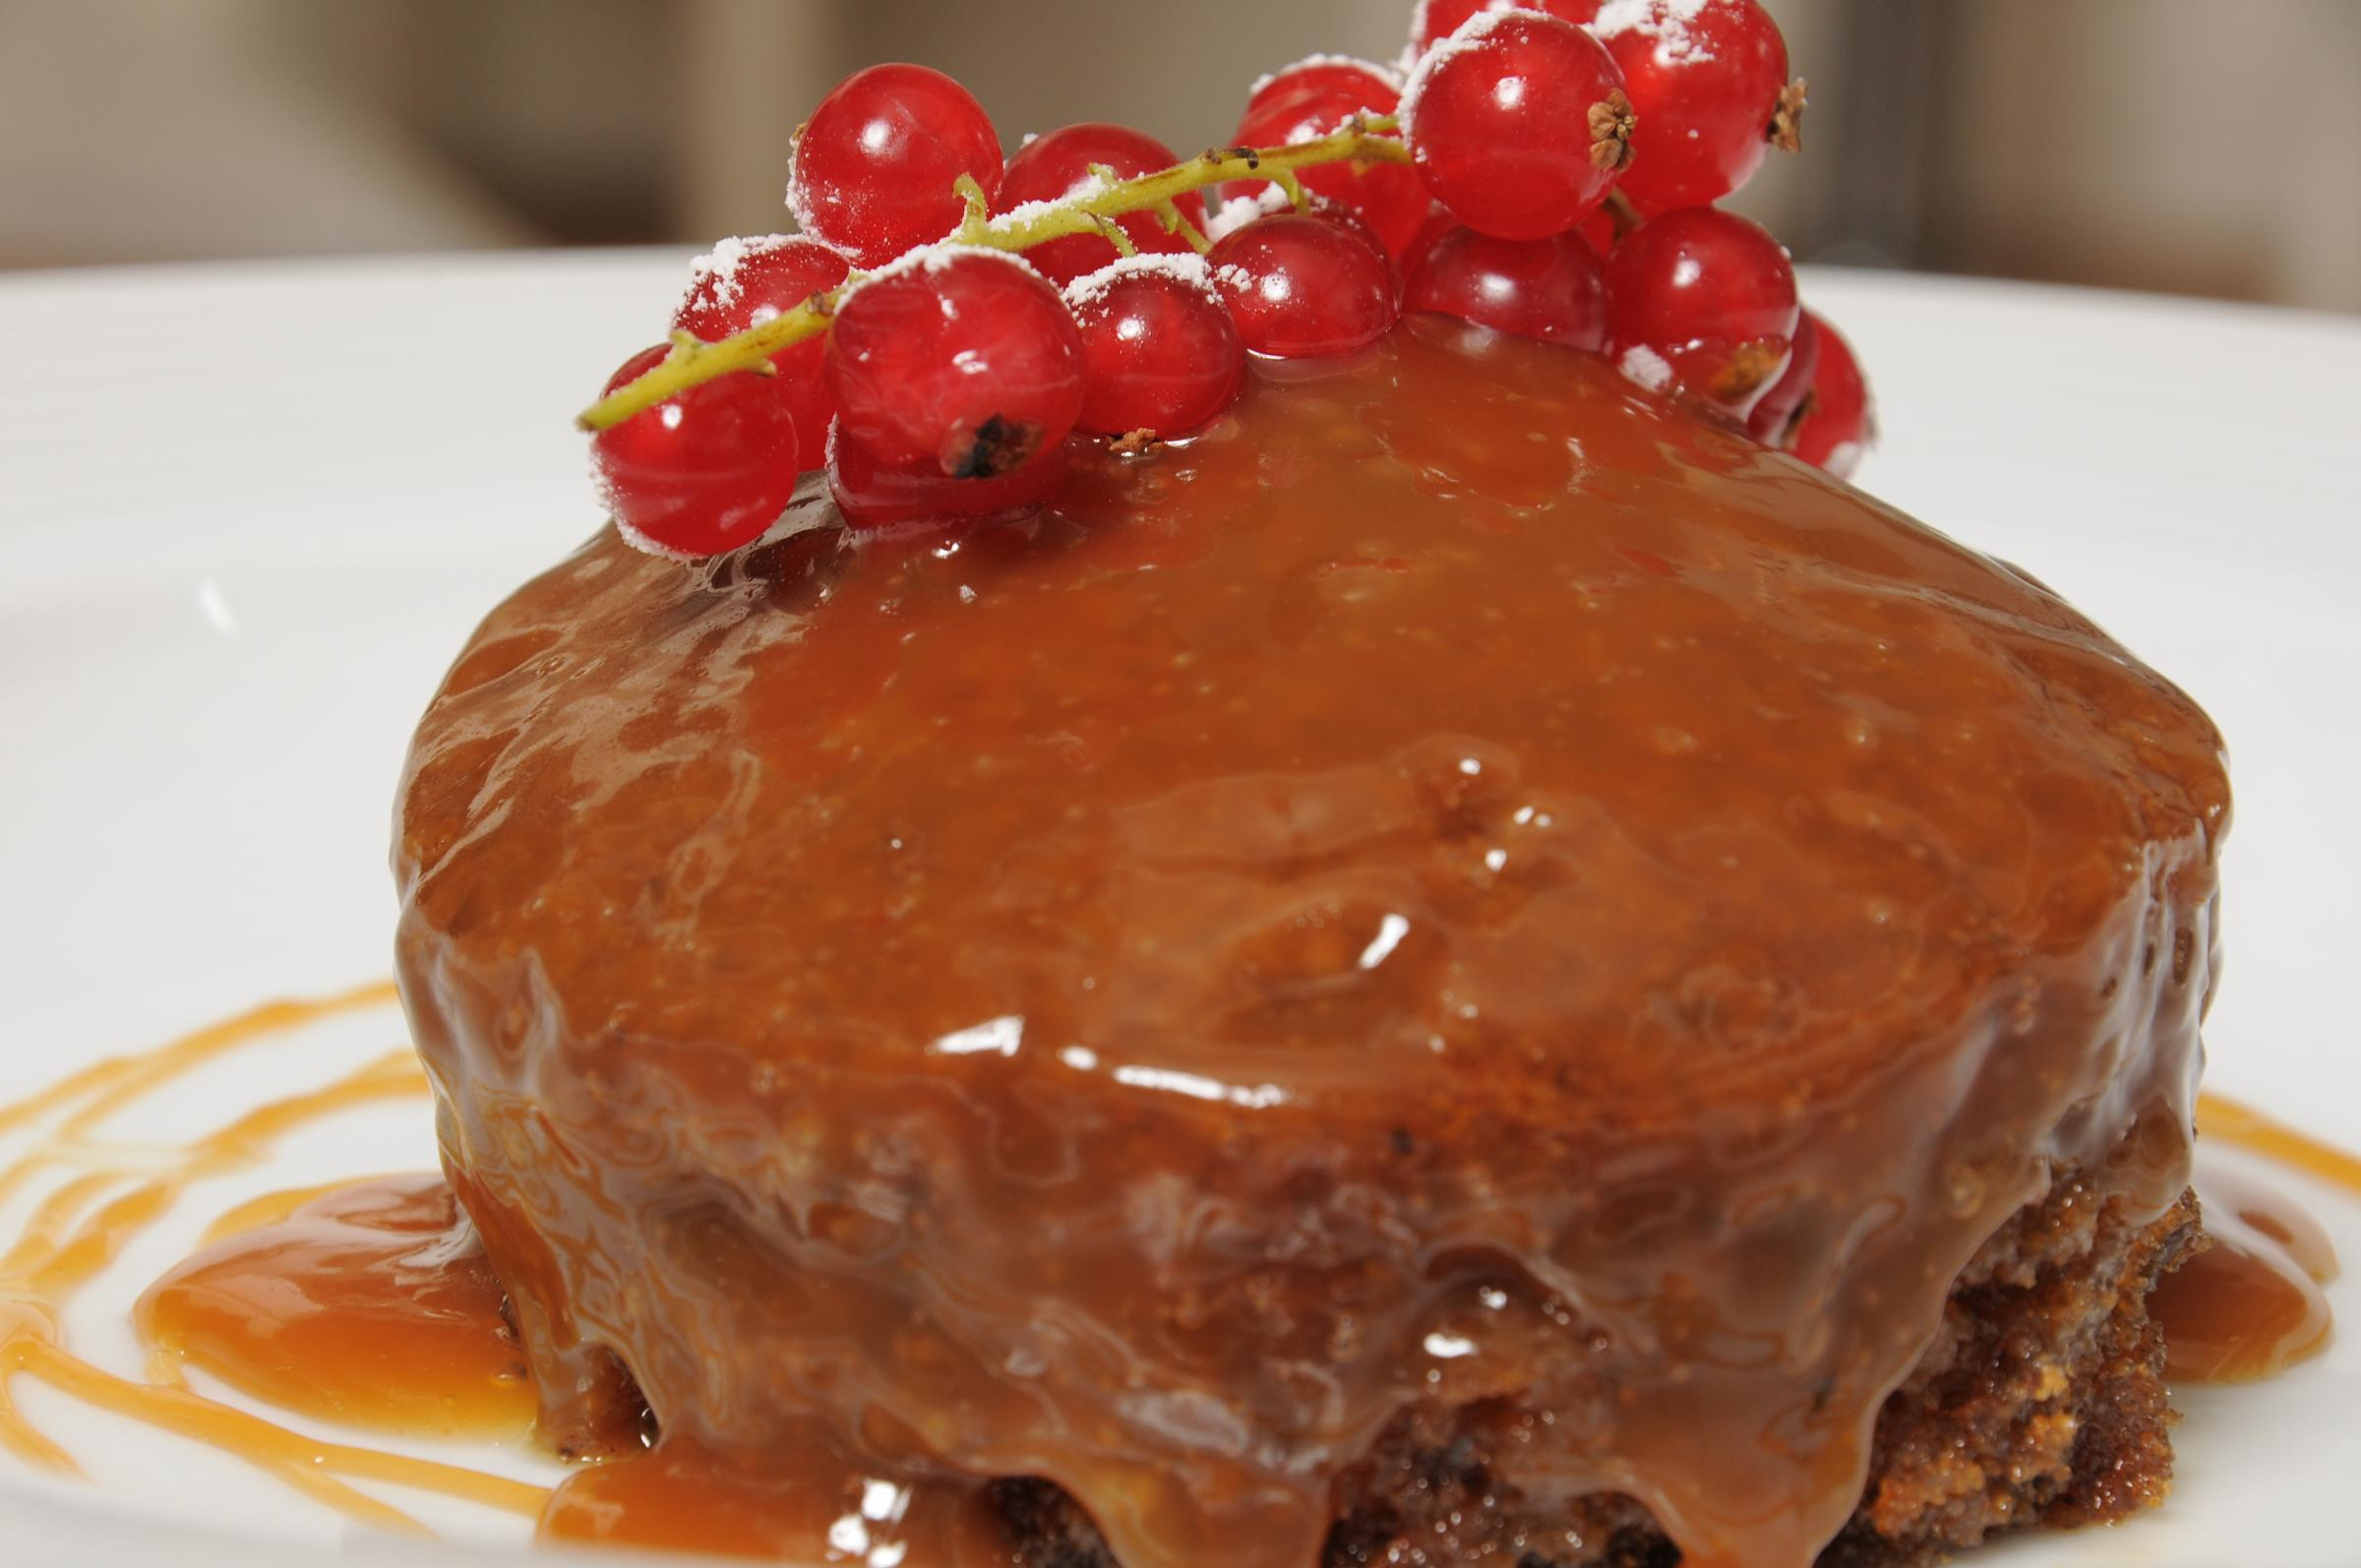 Nick's sticky toffee pudding